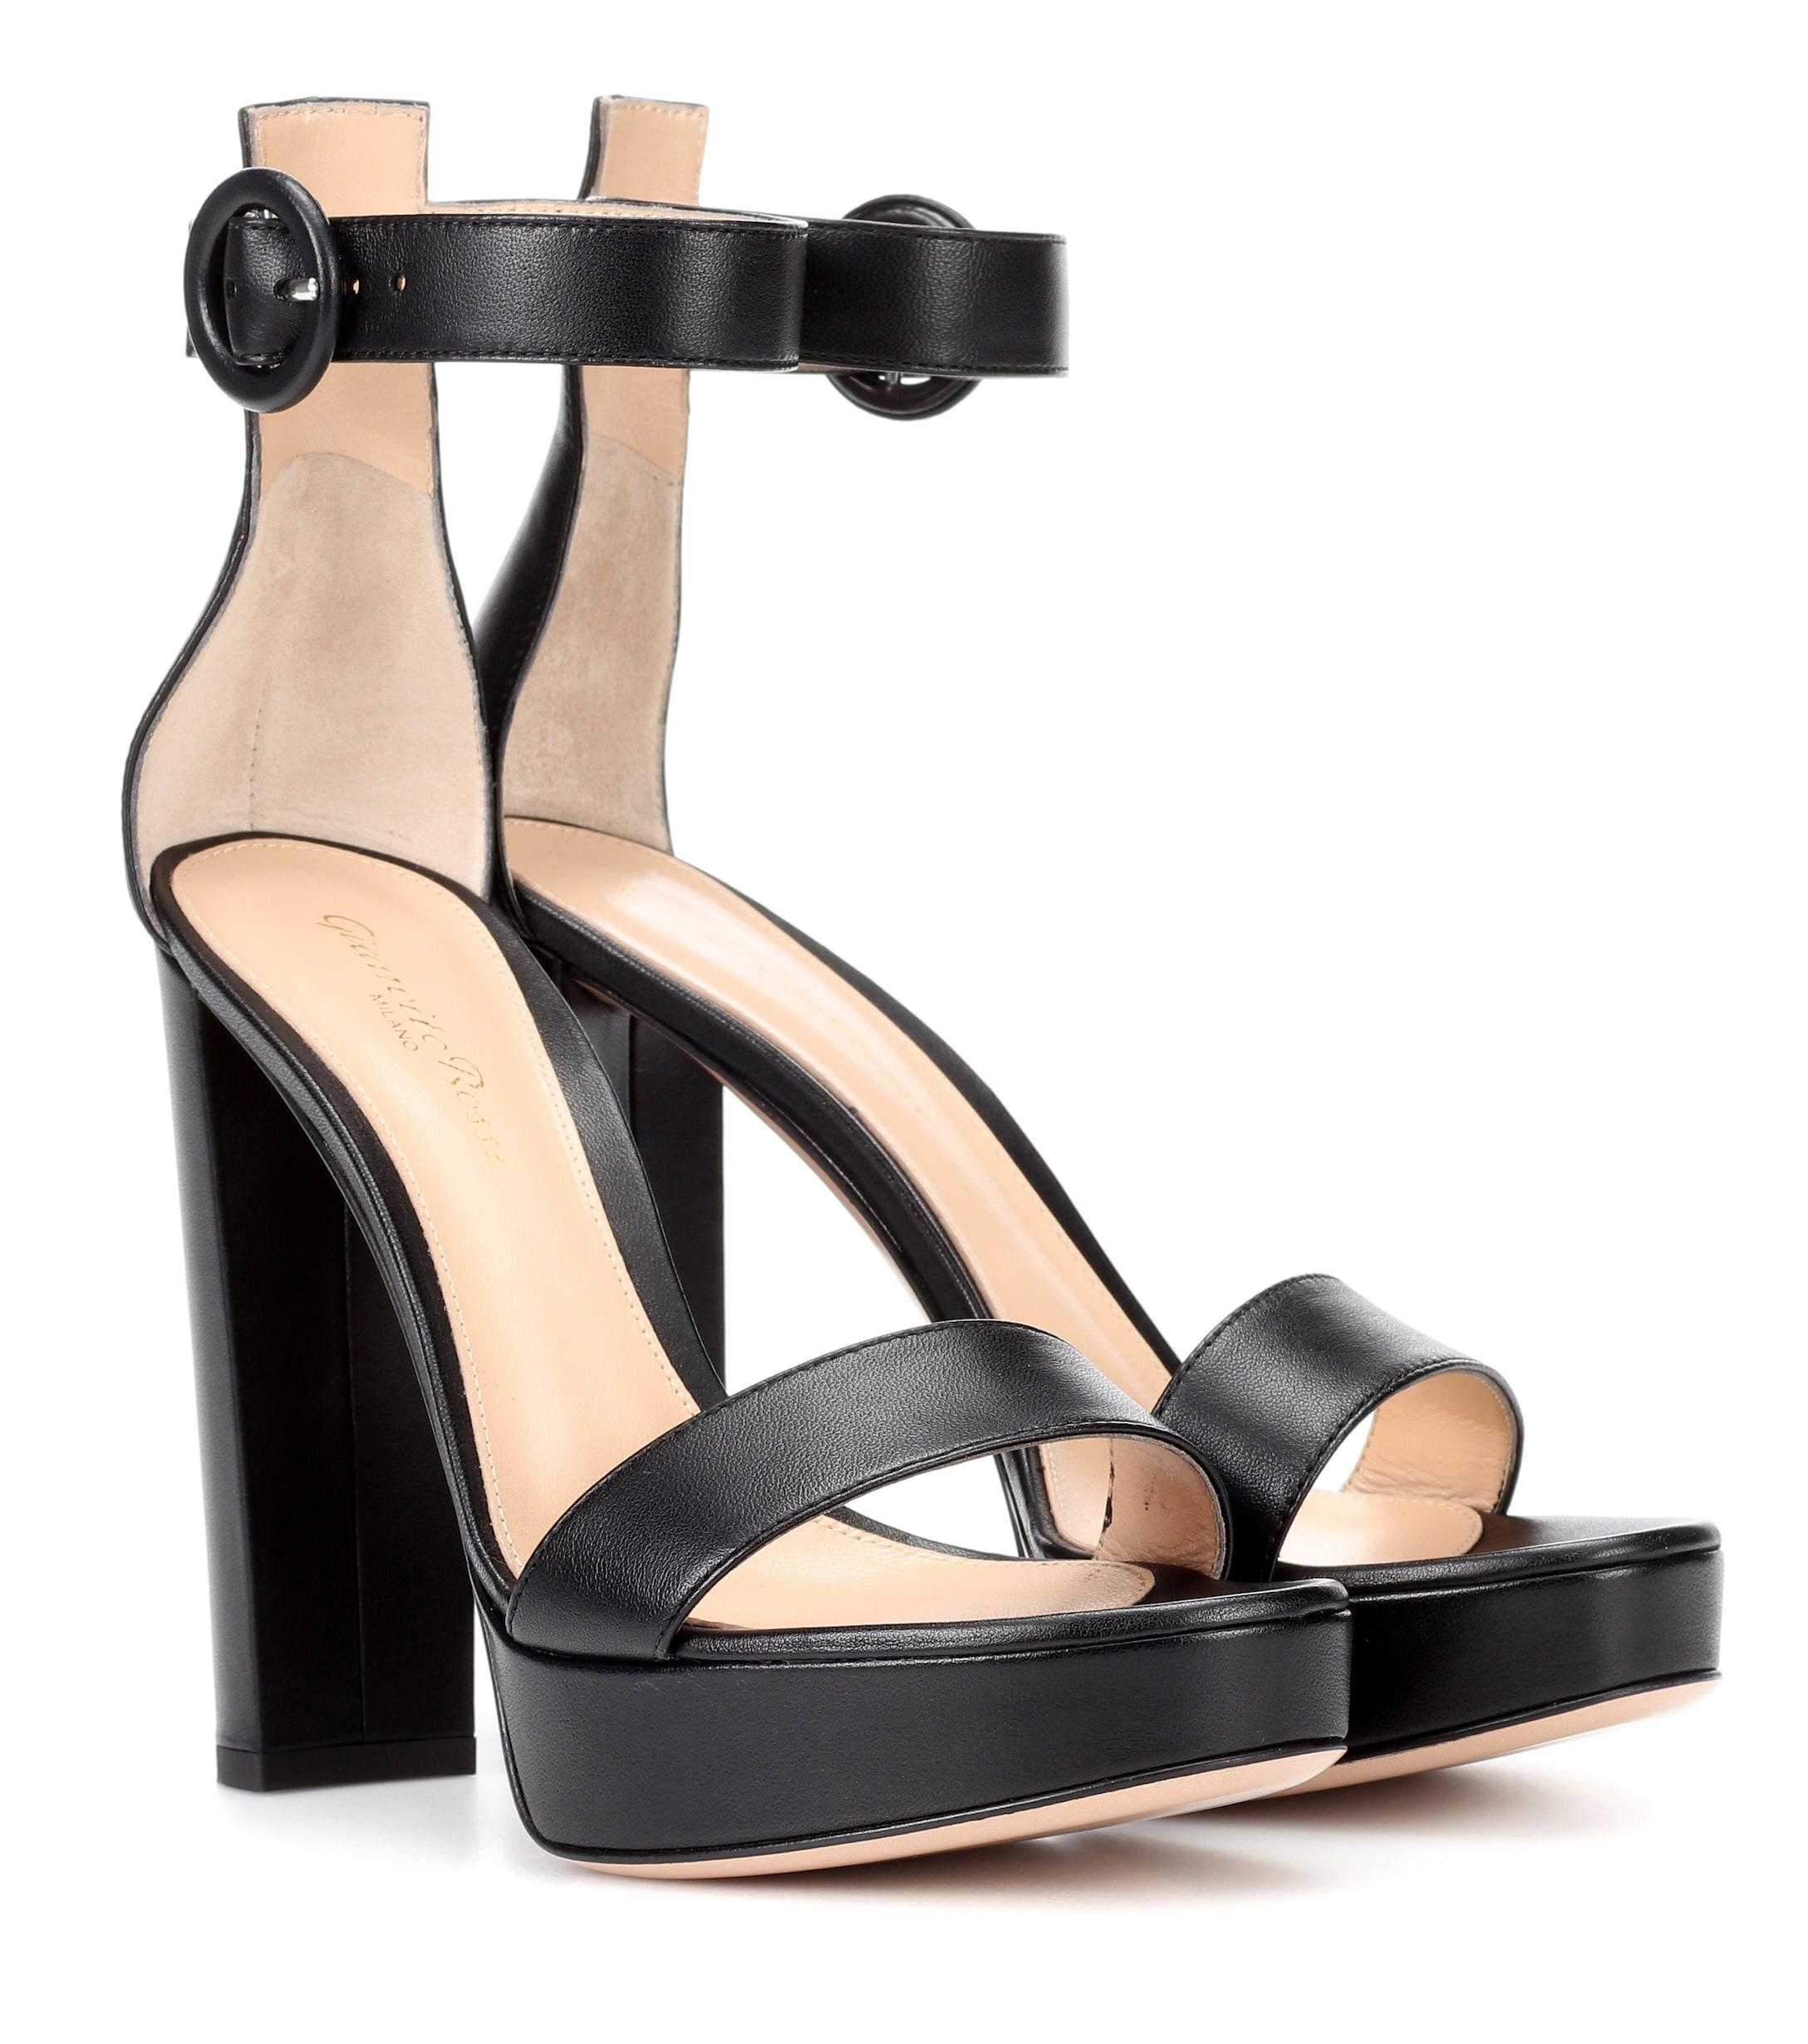 4f3bc9f548a Gianvito Rossi. Women s Black Exclusive To Mytheresa.com – Portofino  Plateau Leather Sandals